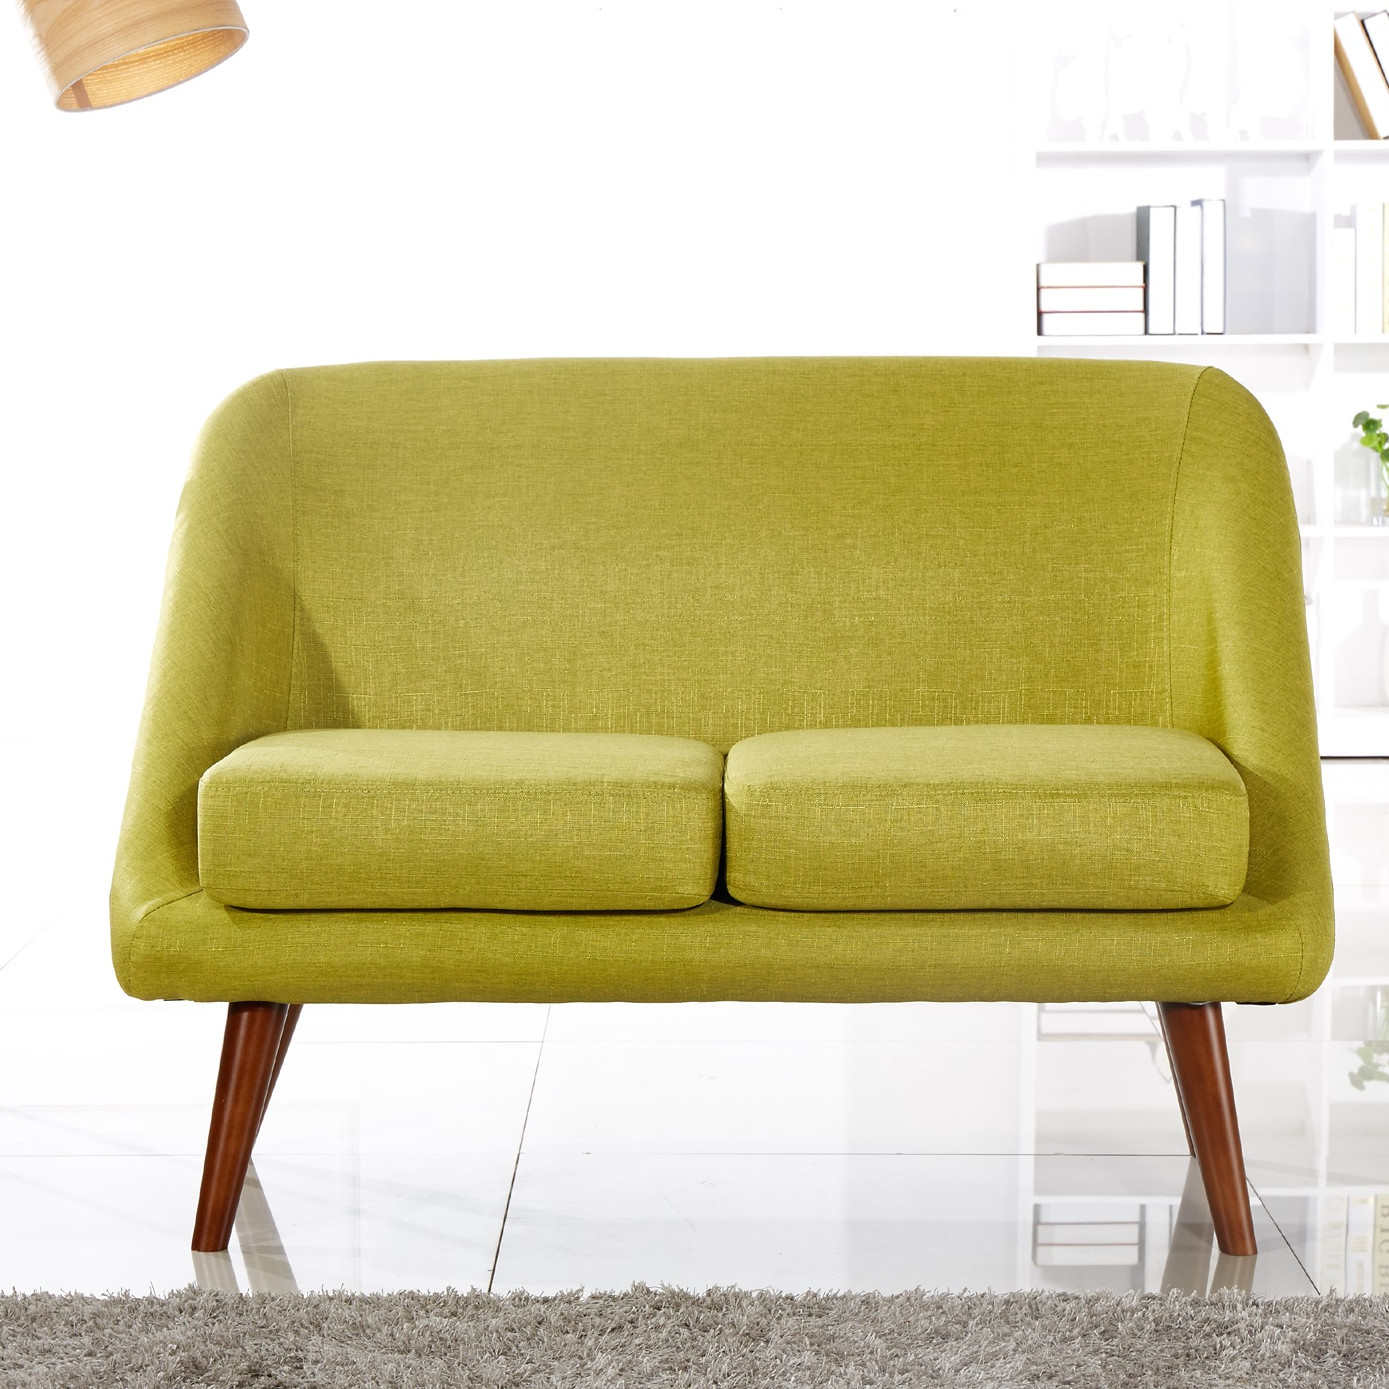 container-modern-style-loveseat-s510